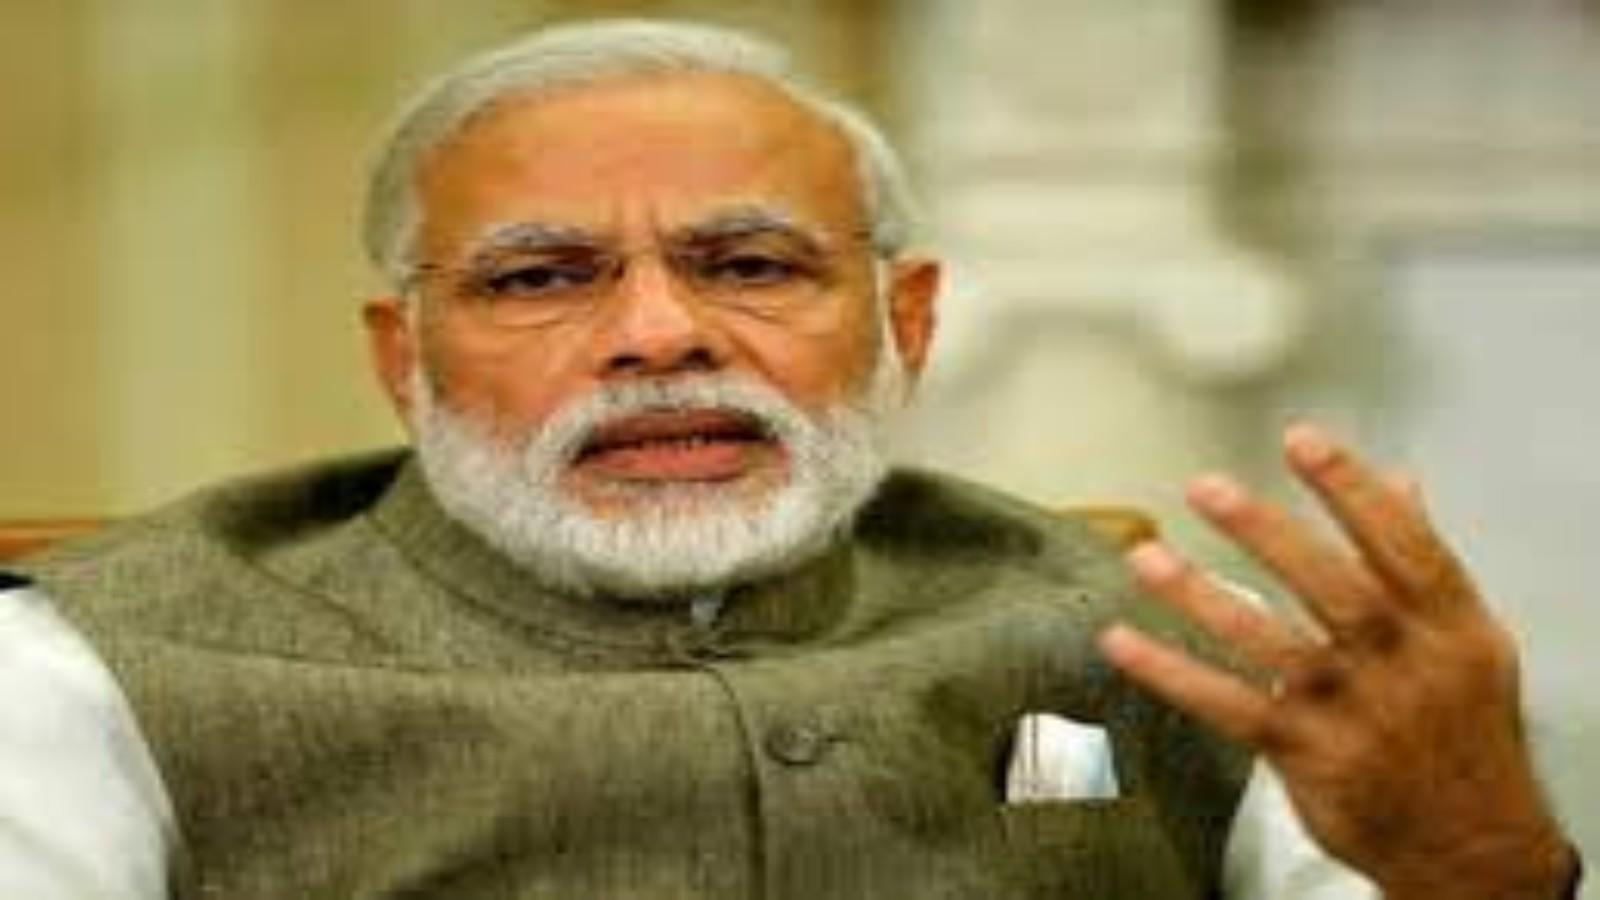 pm-modi-dials-former-presidents-pms-and-opposition-leaders-over-covid-19-pandemic